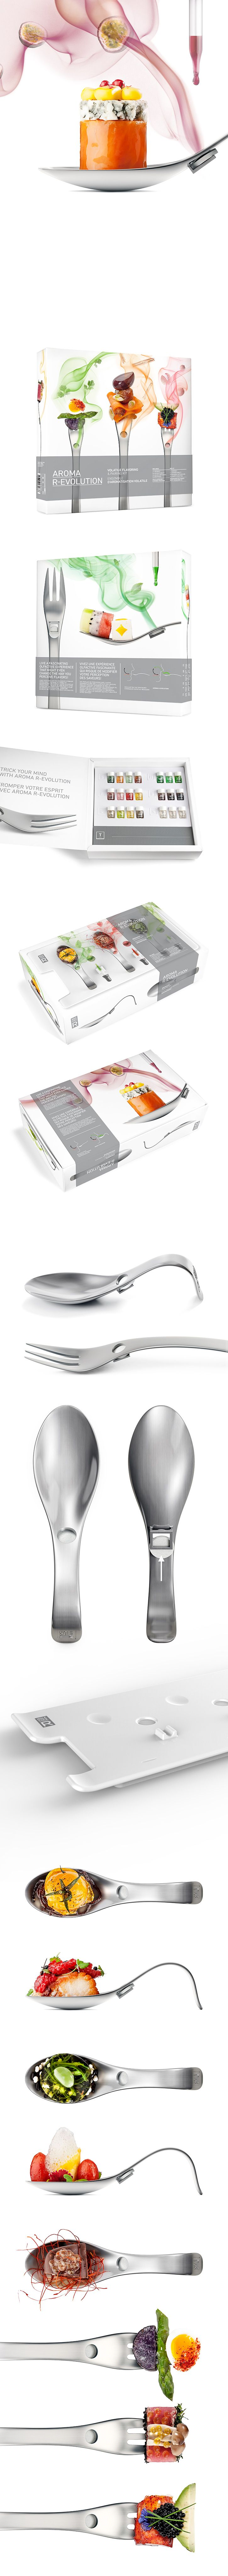 Aromafork & Aromaspoon - Cutlery design & Packagings by Chez Valois, Montreal, Quebec, Canada